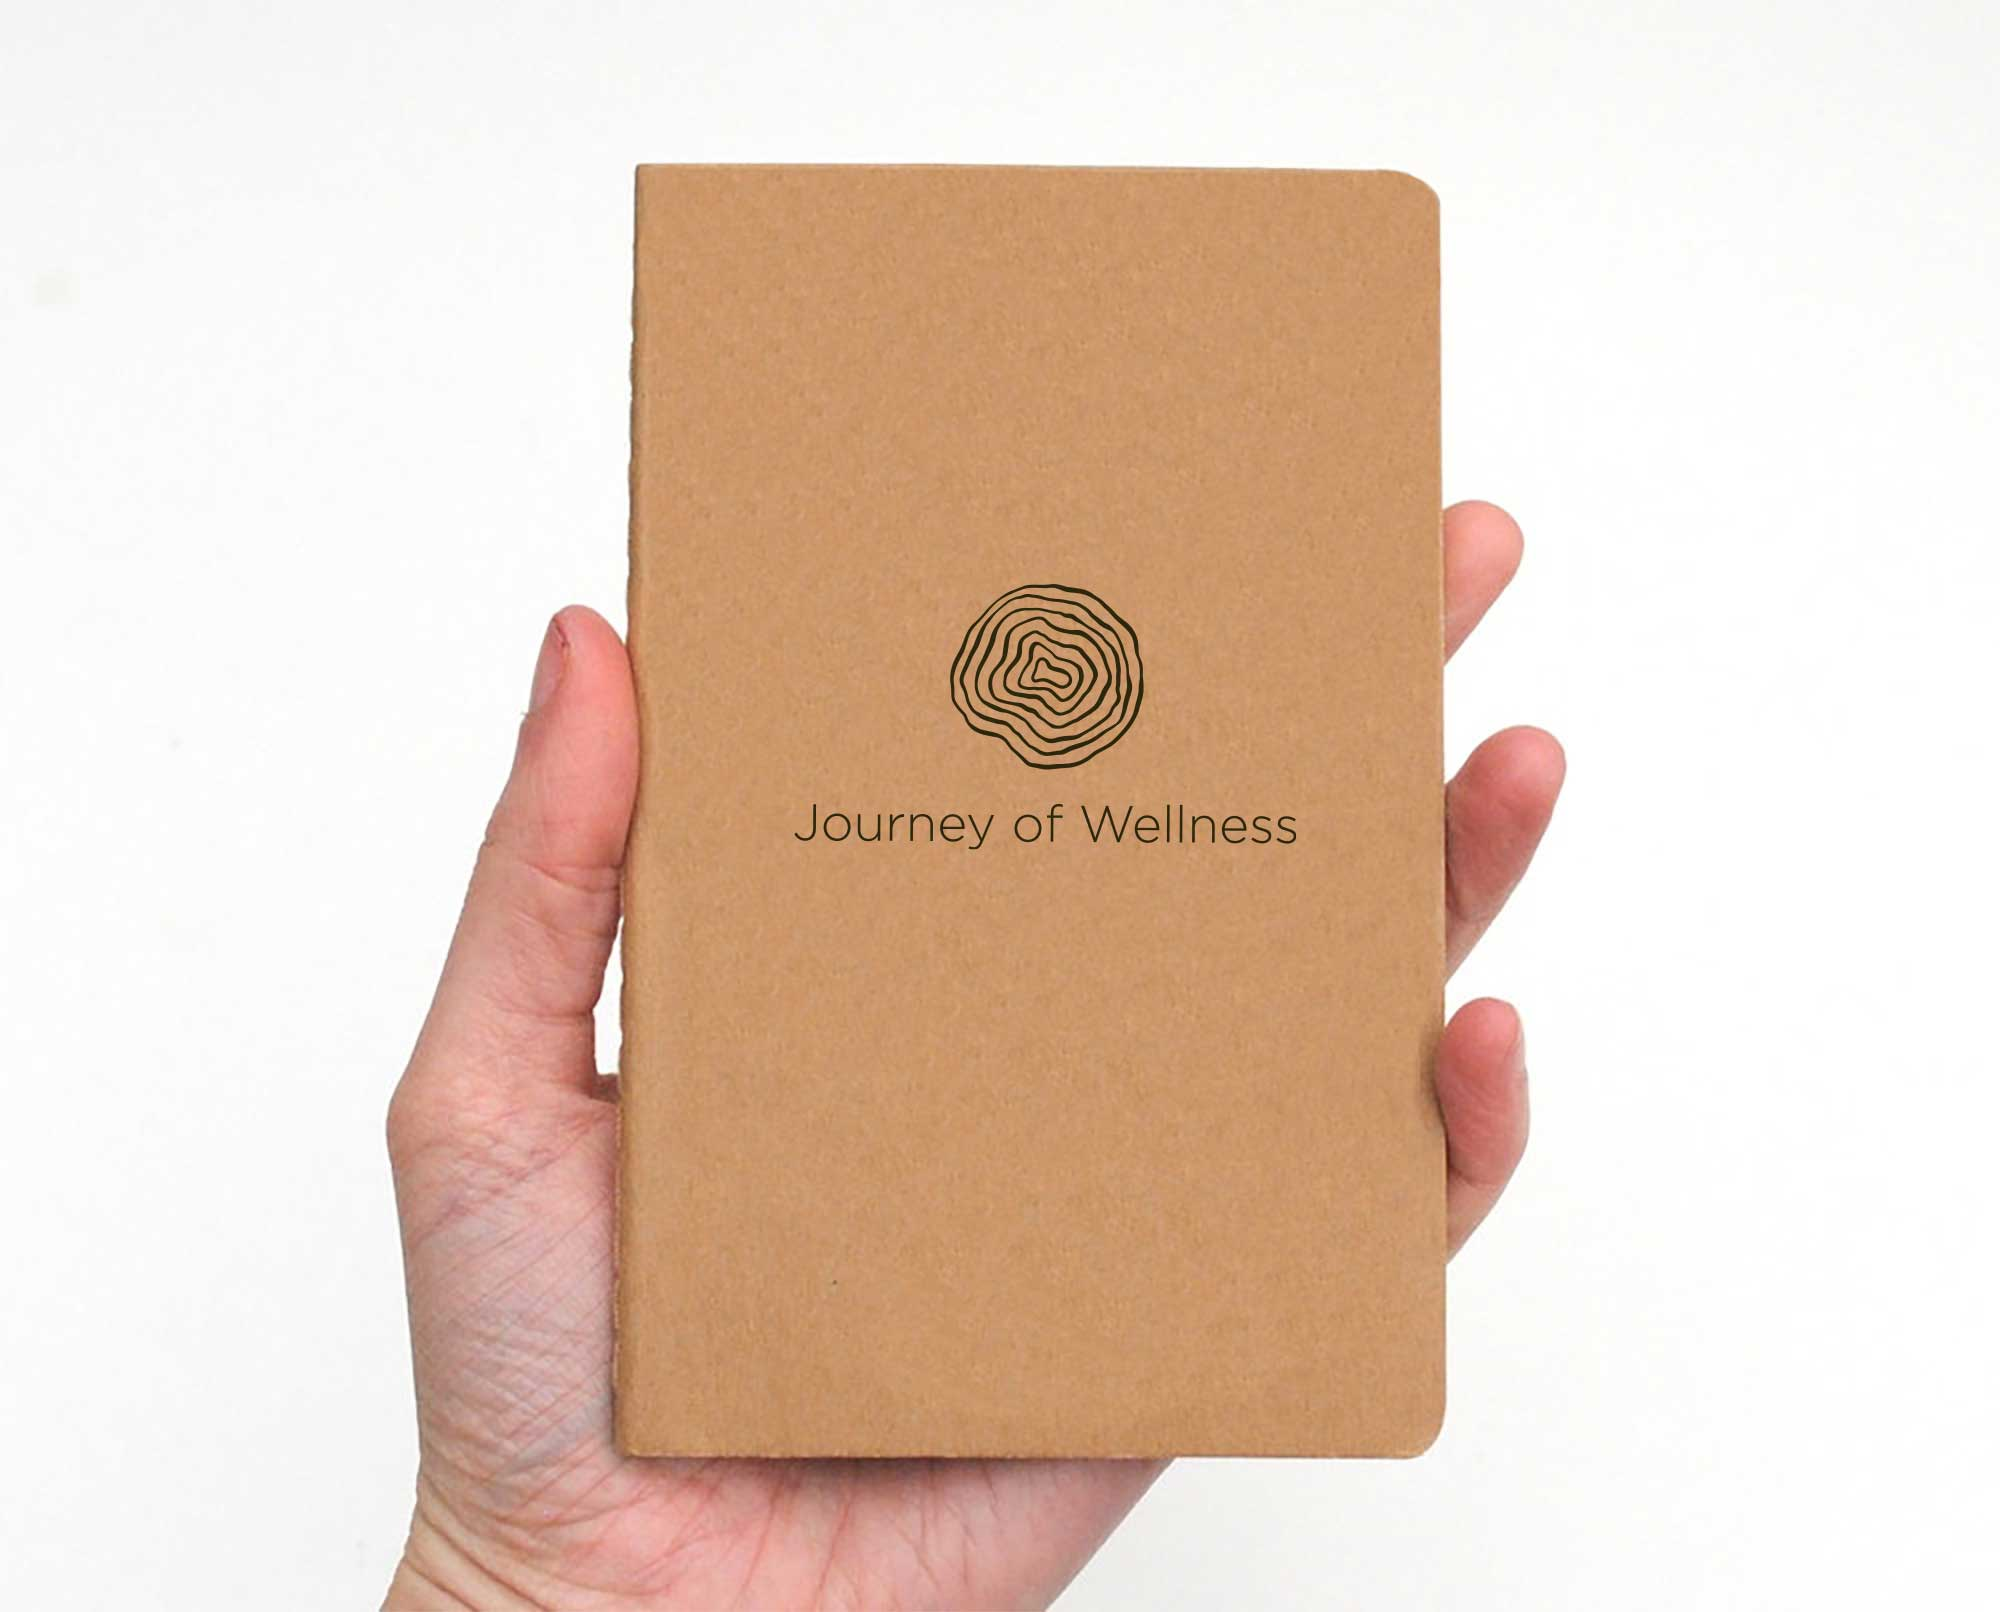 jow-logostamp-notebook